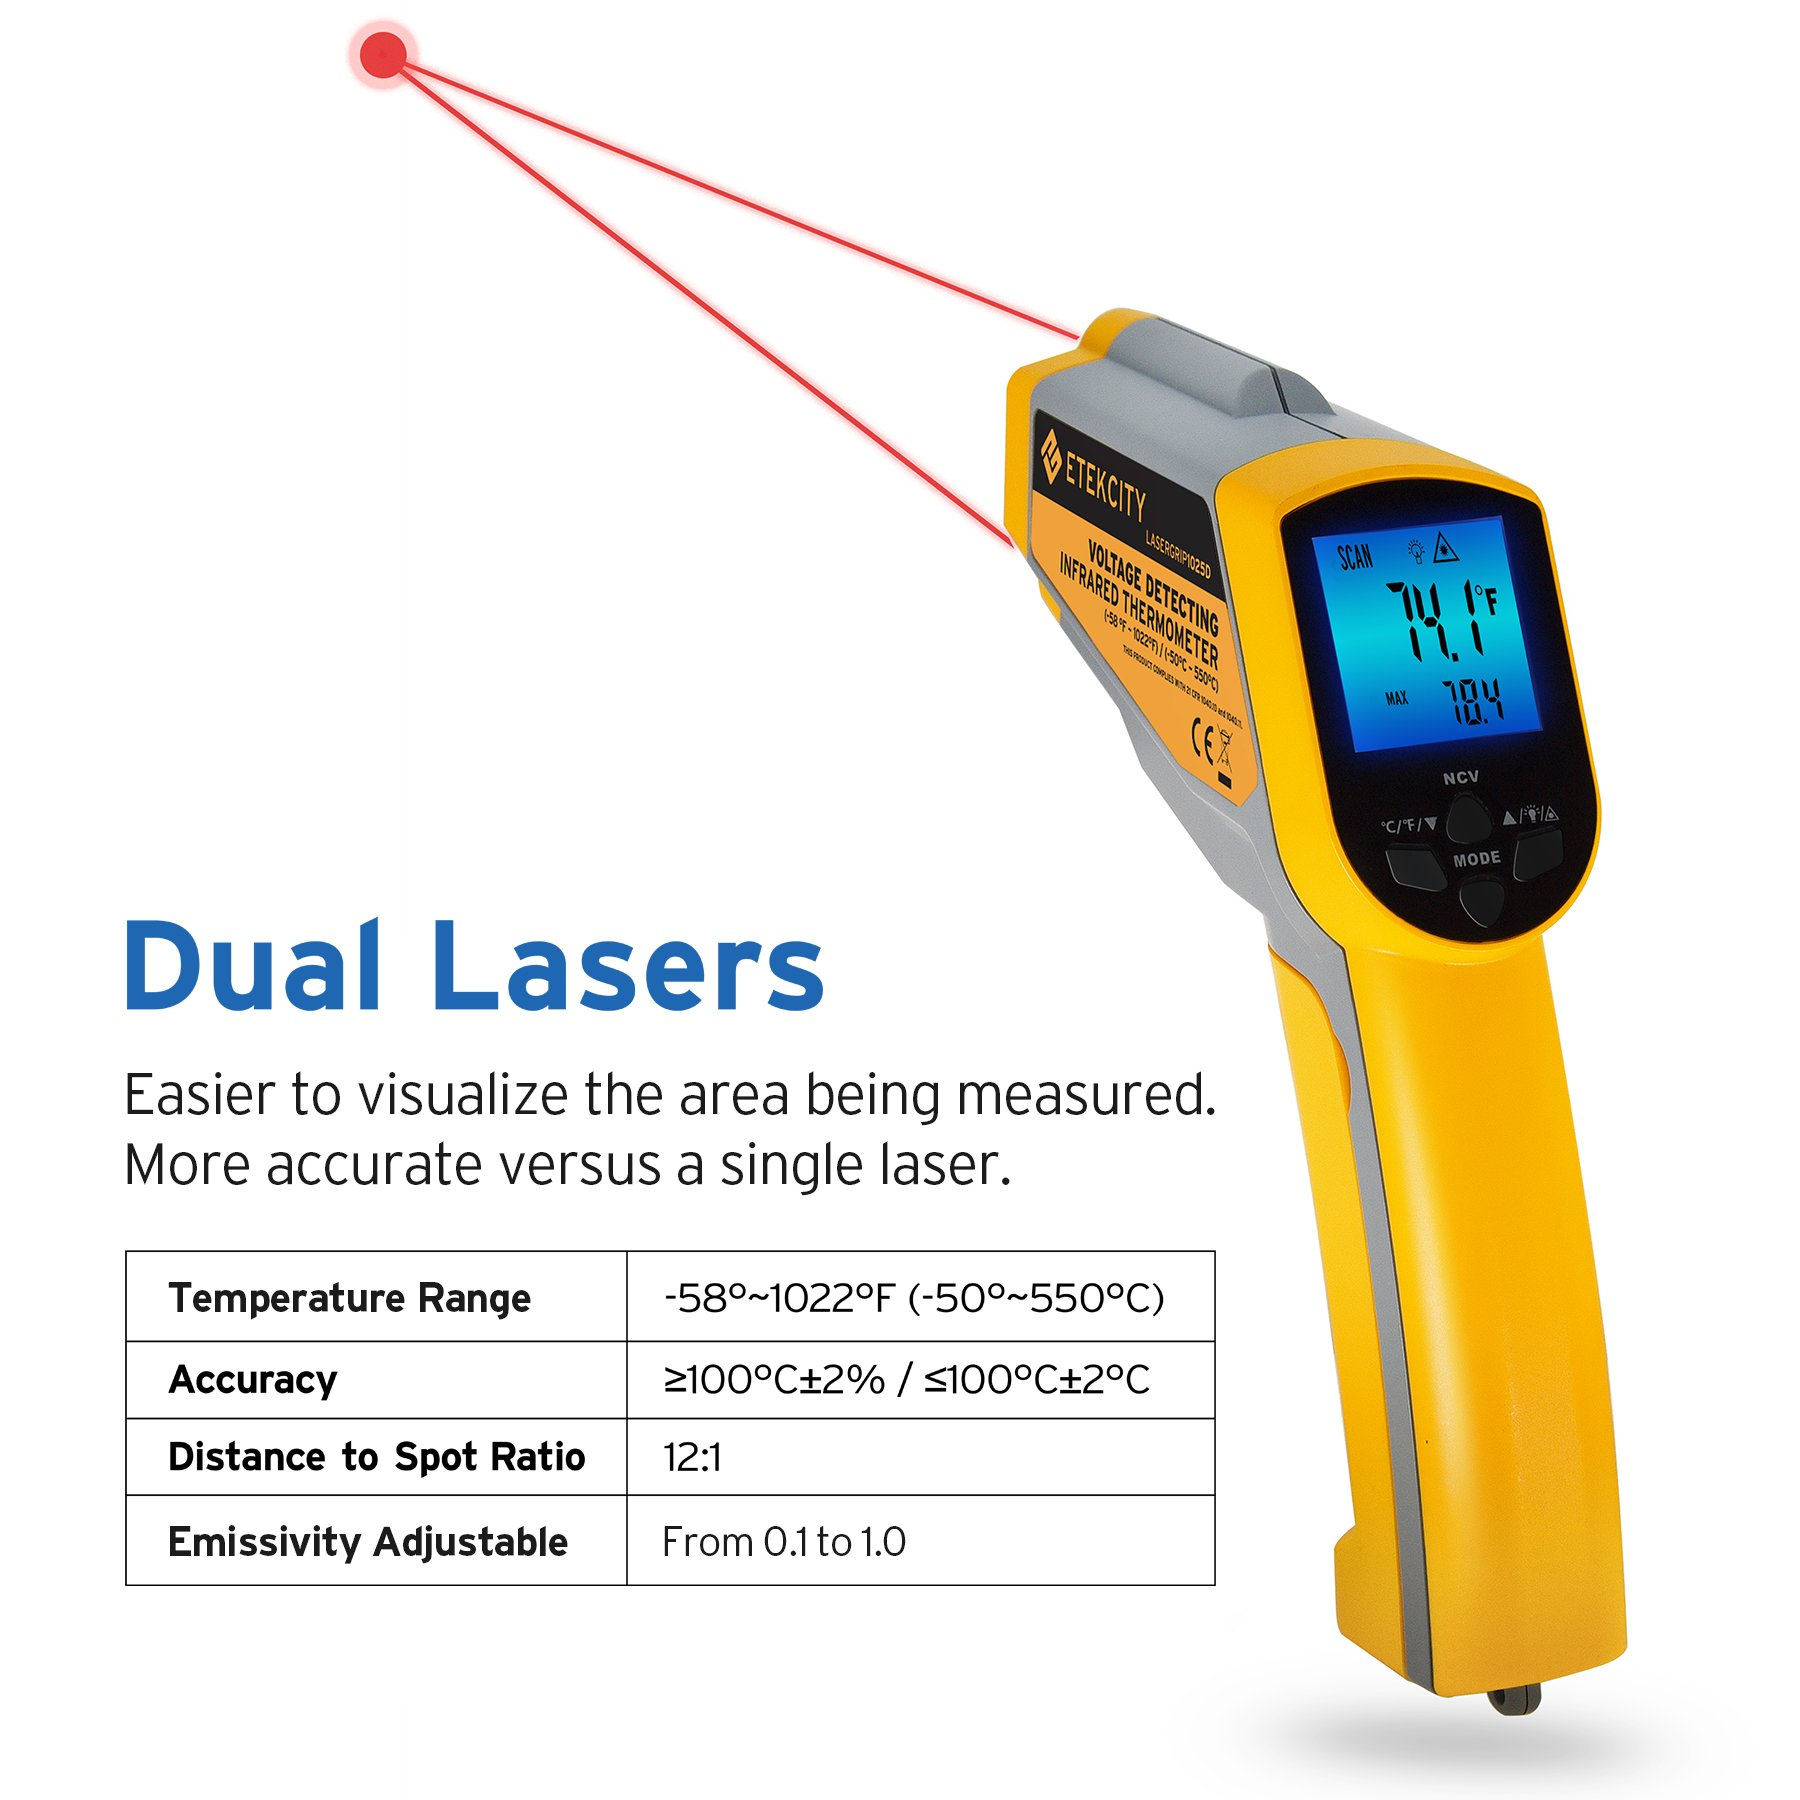 Etekcity Lasergrip 1025D Digital Dual Laser Infrared Thermometer Temperature Gun Non-contact -58℉~1022℉ (-50℃ ~ 550℃) with Voltage Detecting, Adjustable Emissivity by Etekcity (Image #4)